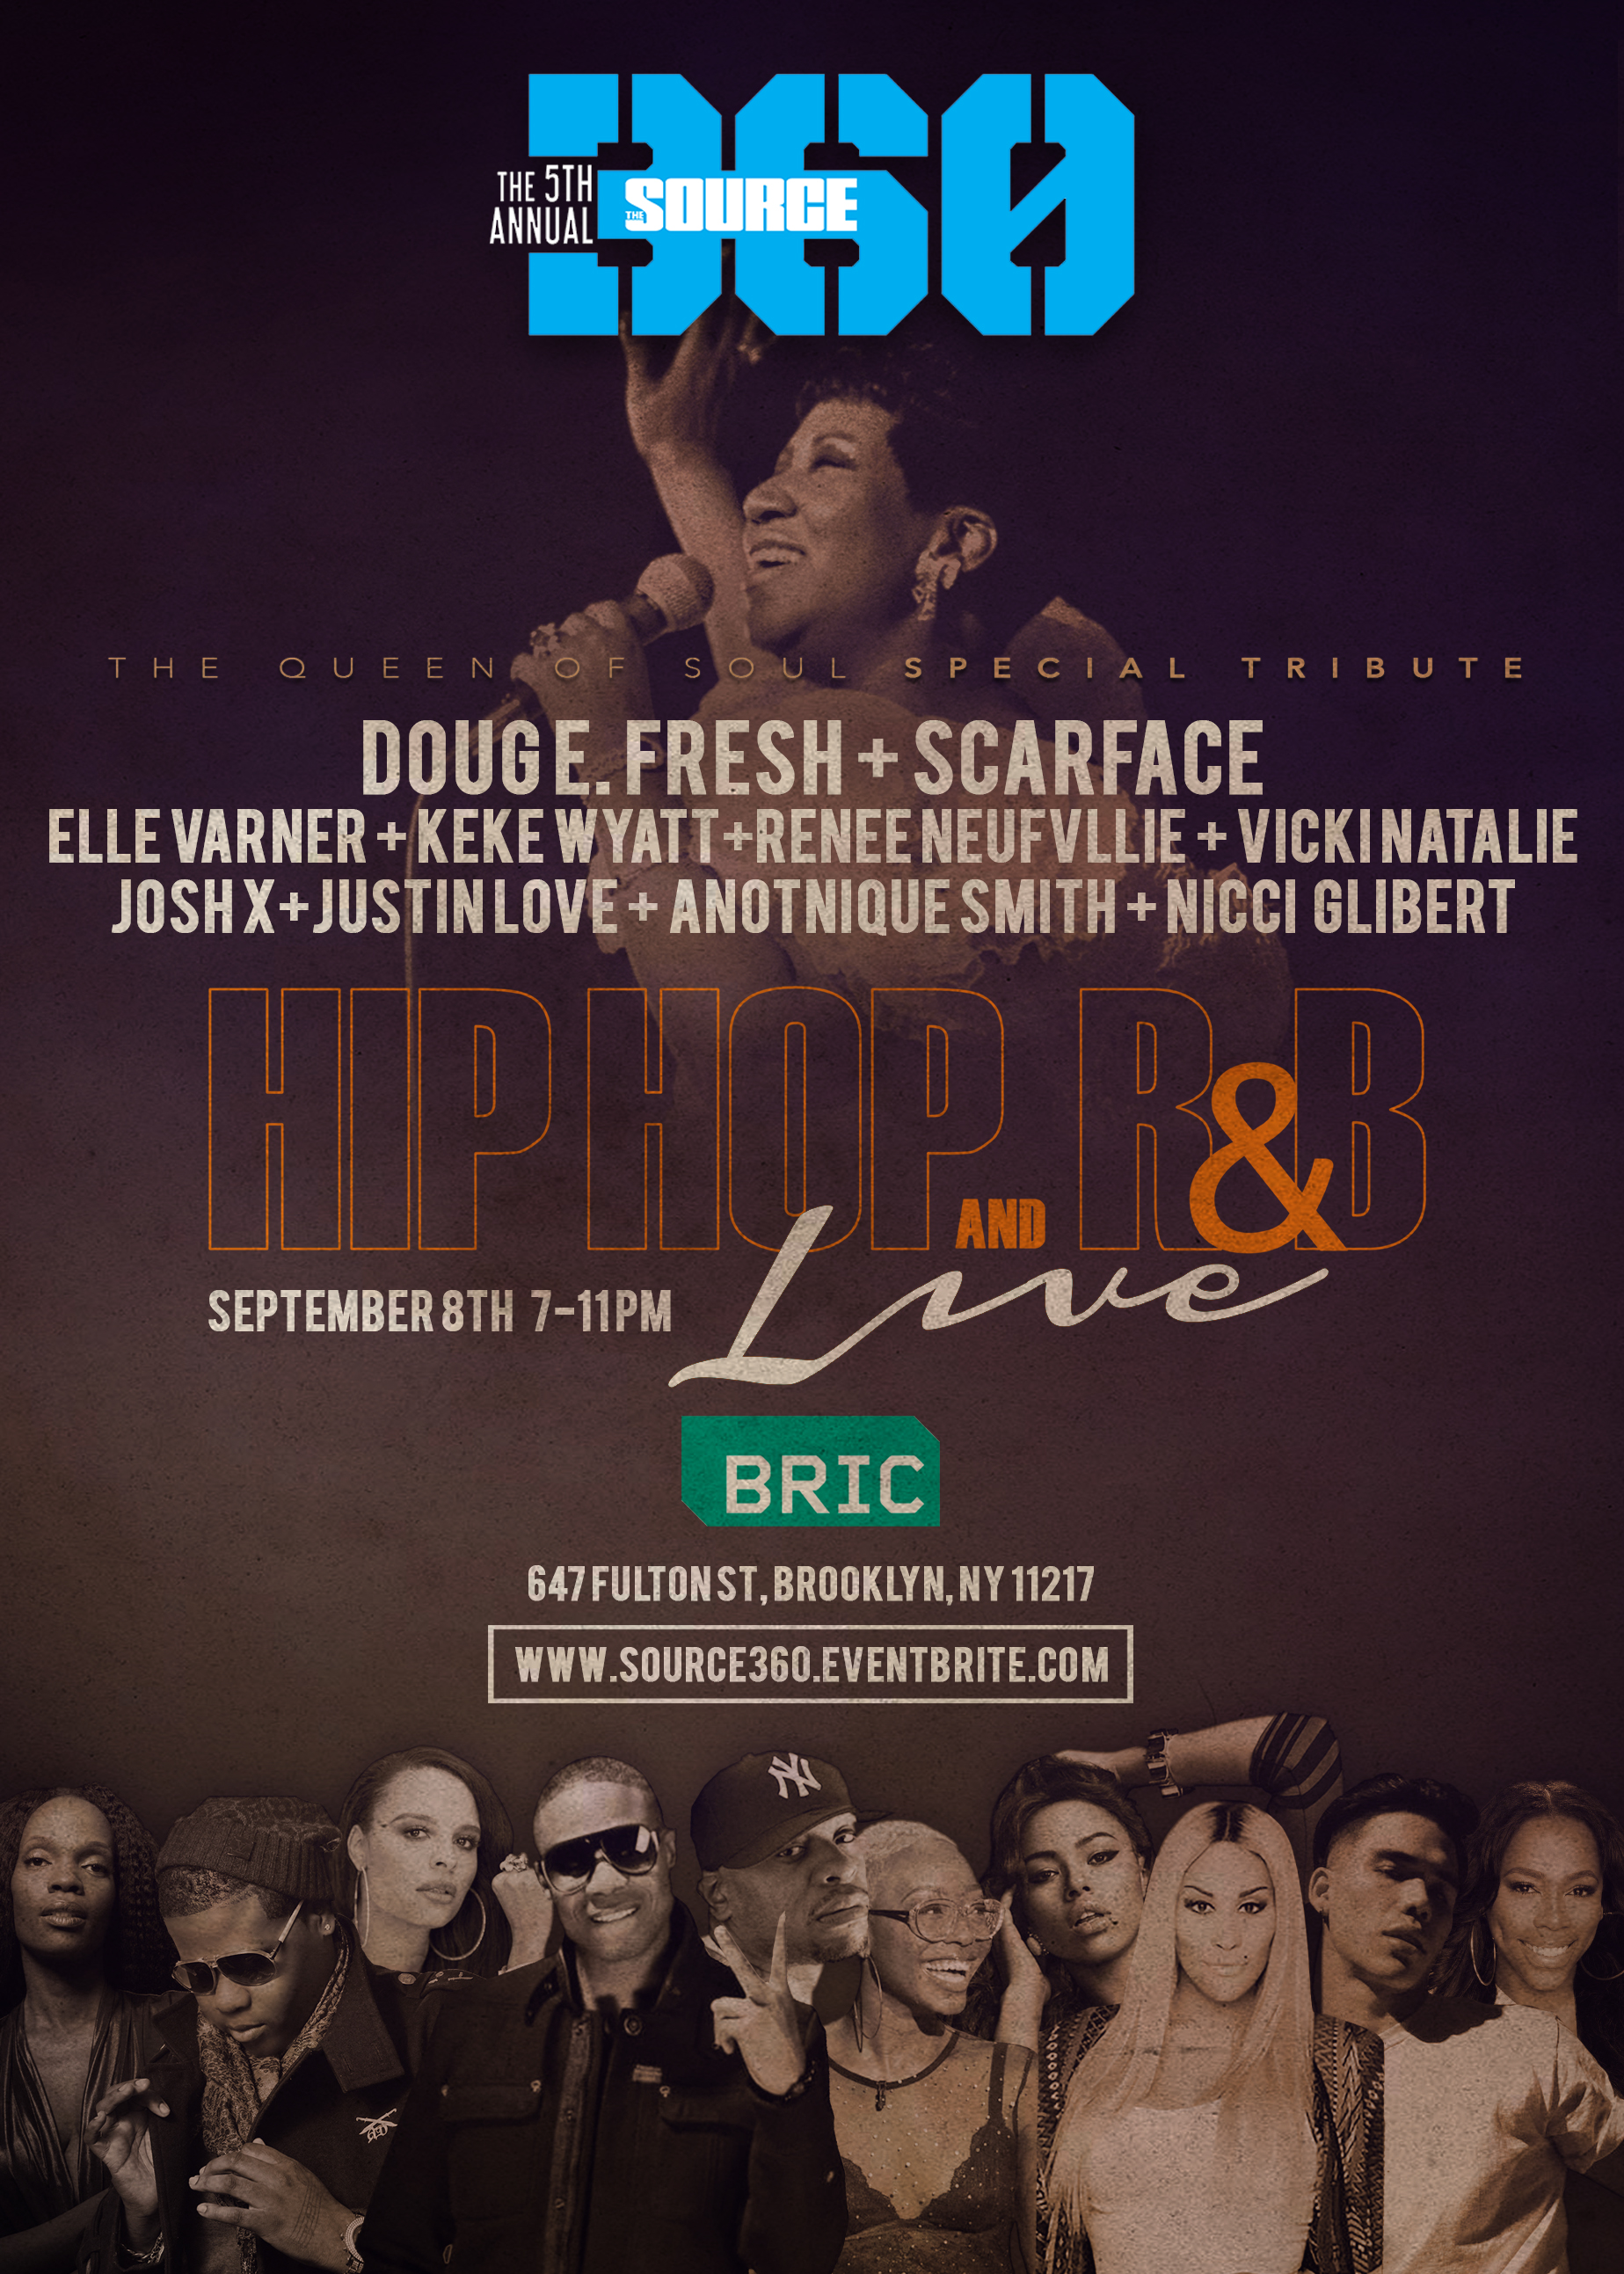 Doug E. Fresh, Scarface, Elle Varner, KeKe Wyatt & More to Honor Aretha Franklin at 5th Annual SOURCE360 Festival & Music Conference